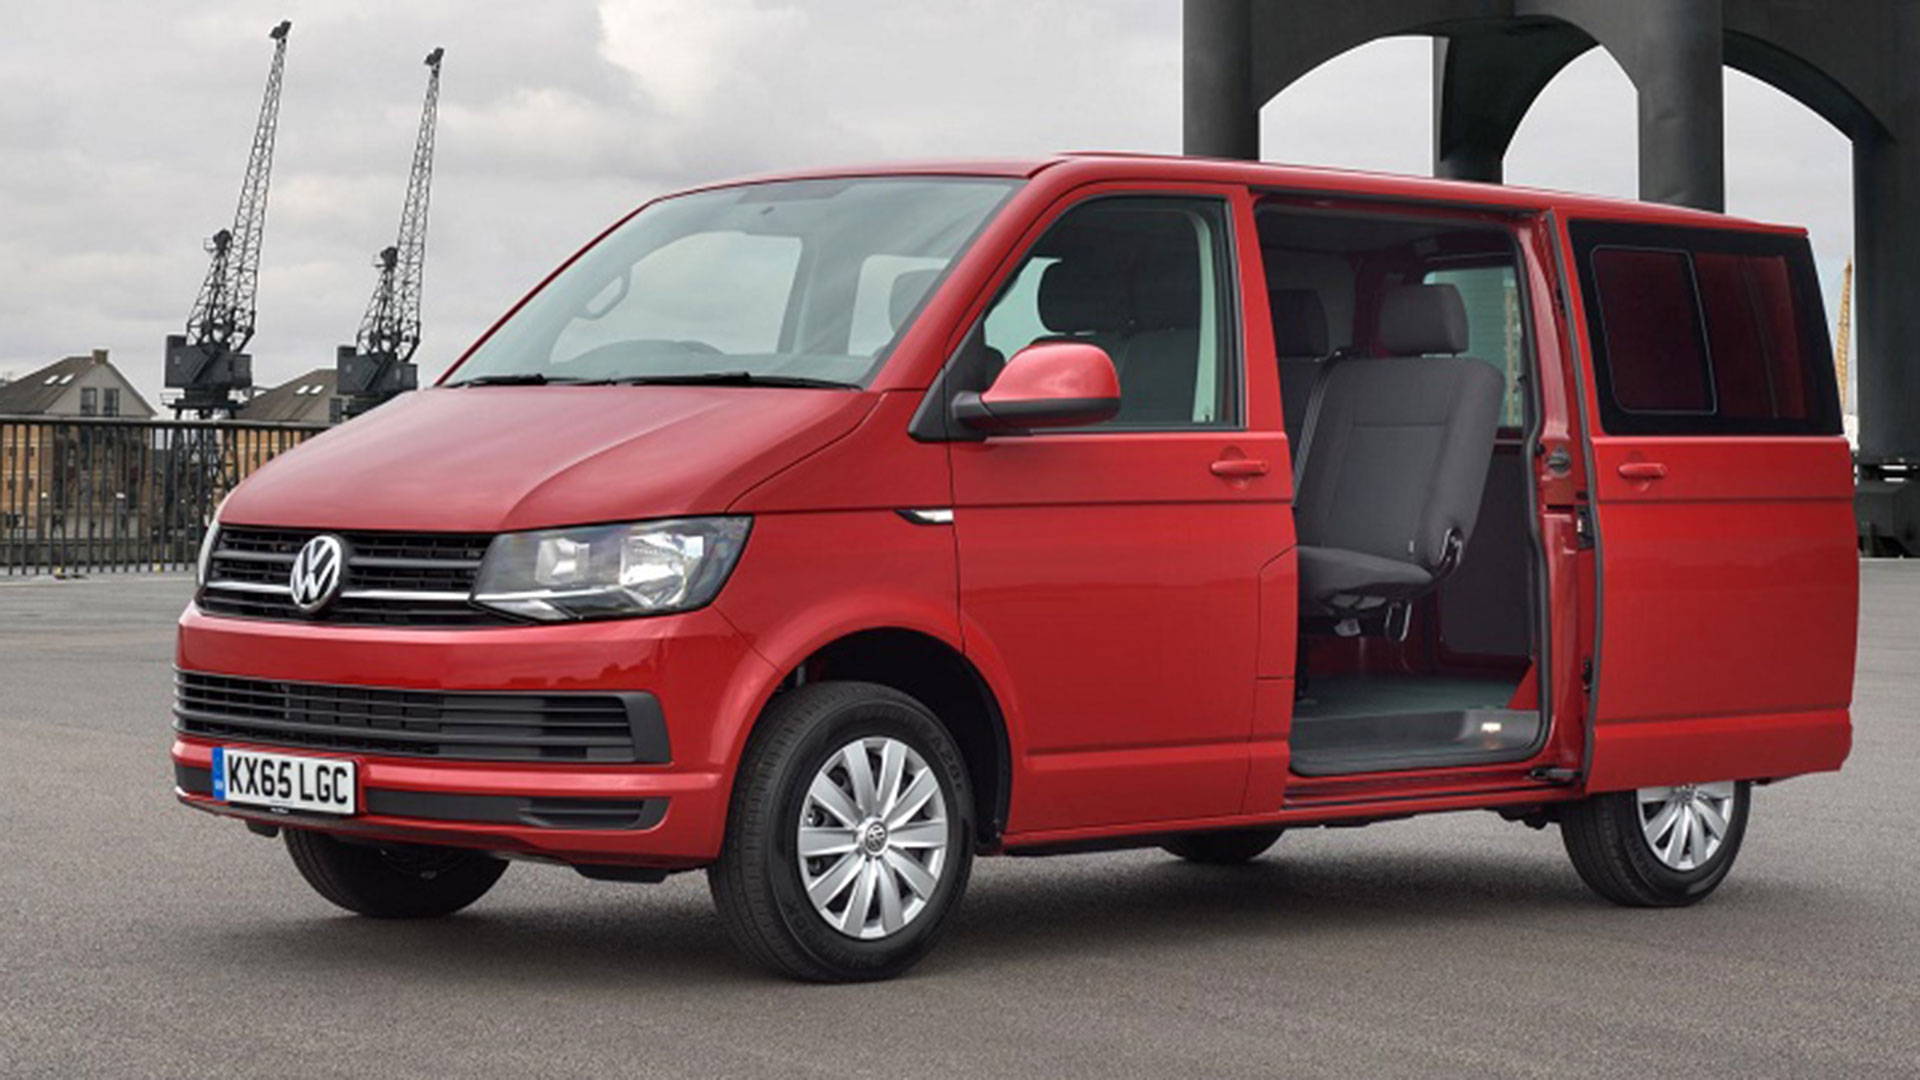 Commercial Business Van Insurance Cover | Trade Direct Insurance